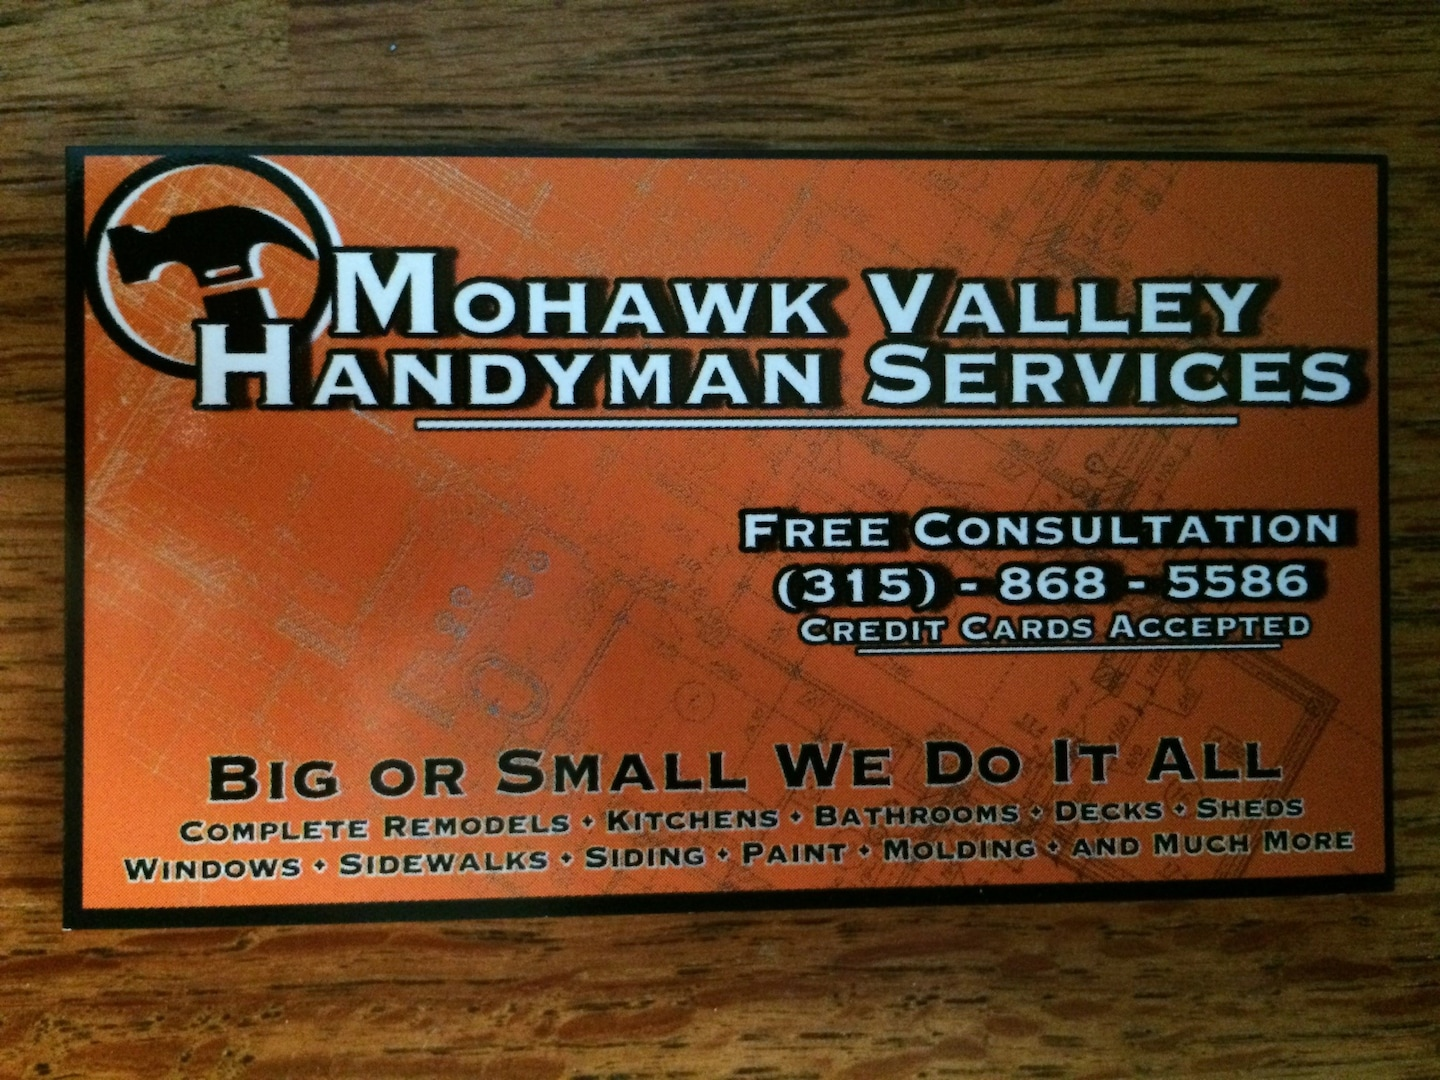 Mohawk Valley Handyman Services